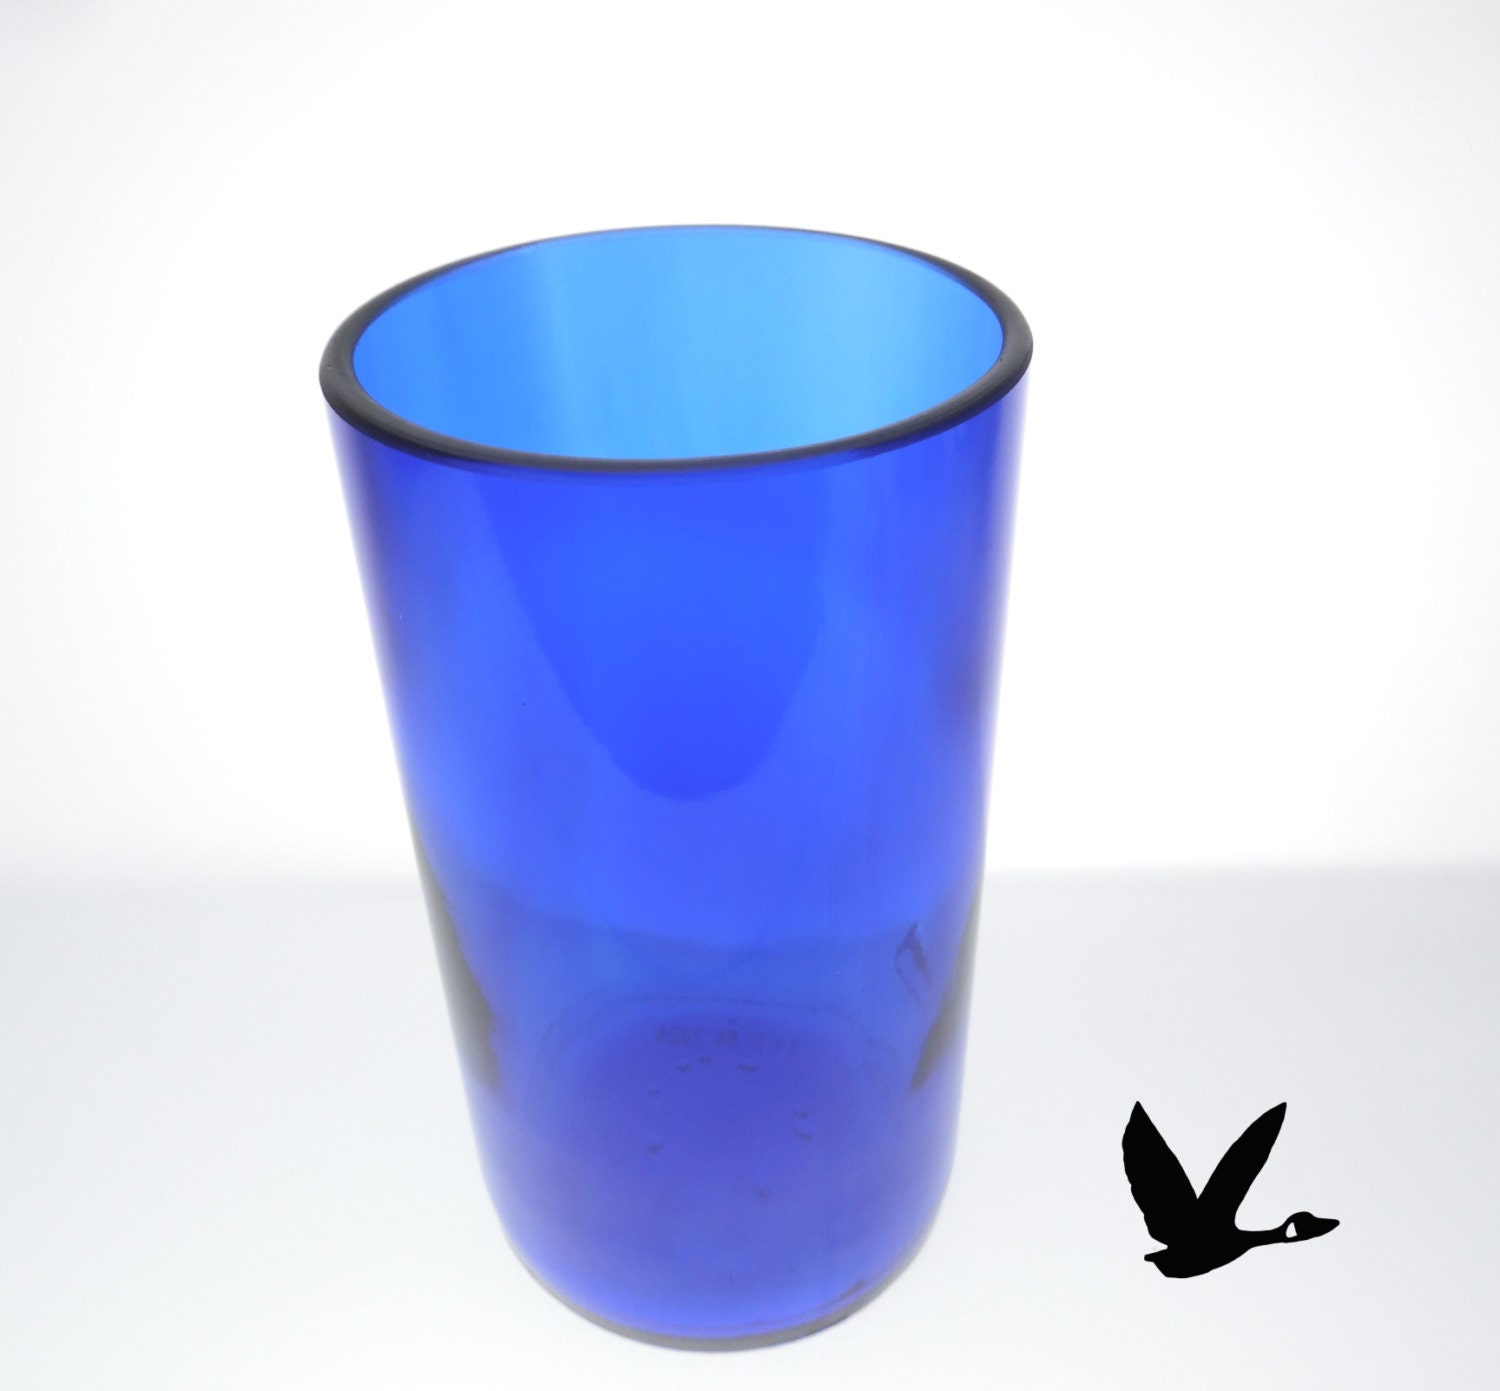 Skinny Tumbler Skyy Vodka Booze Gift Idea 21st Birthday Blue